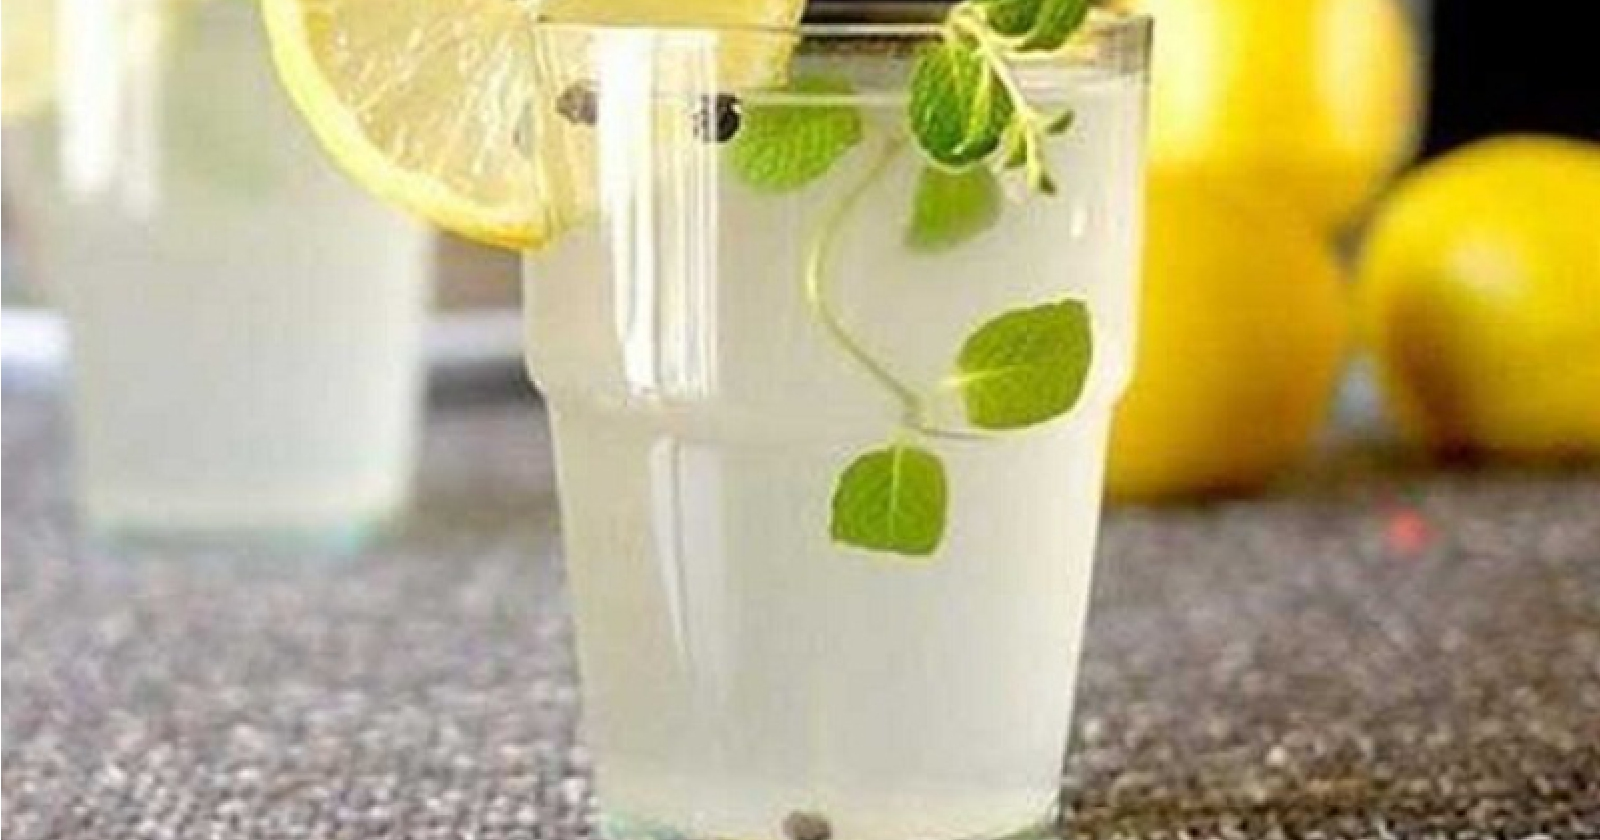 Drink-Lemon-Juice-Saveral-Times-a-day-for-Gout-Pain-Relief